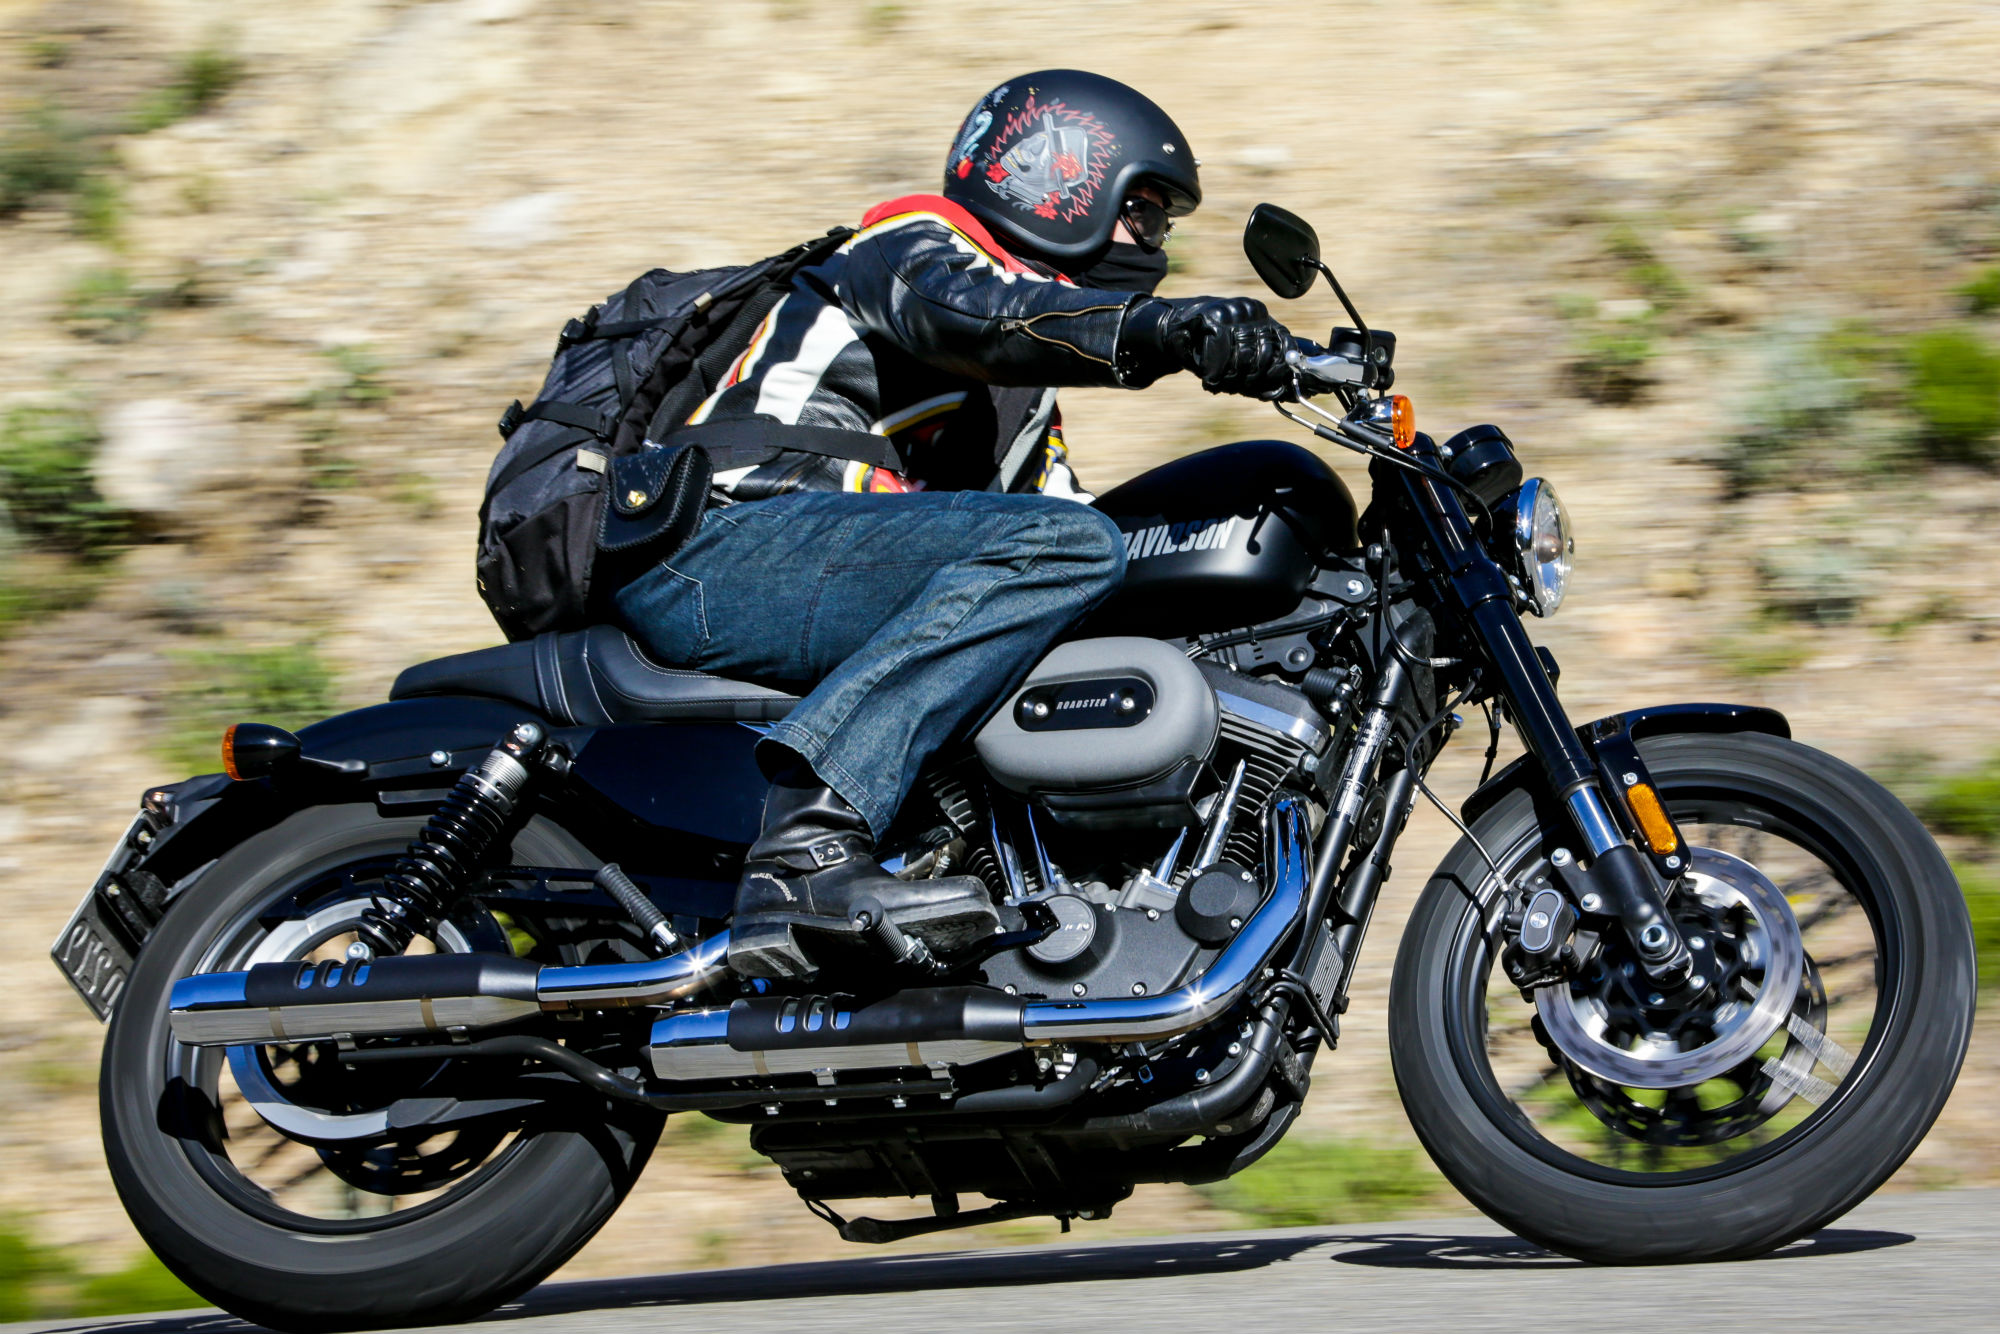 First Ride Harley Davidson Roadster And Low Rider S Re Visordown